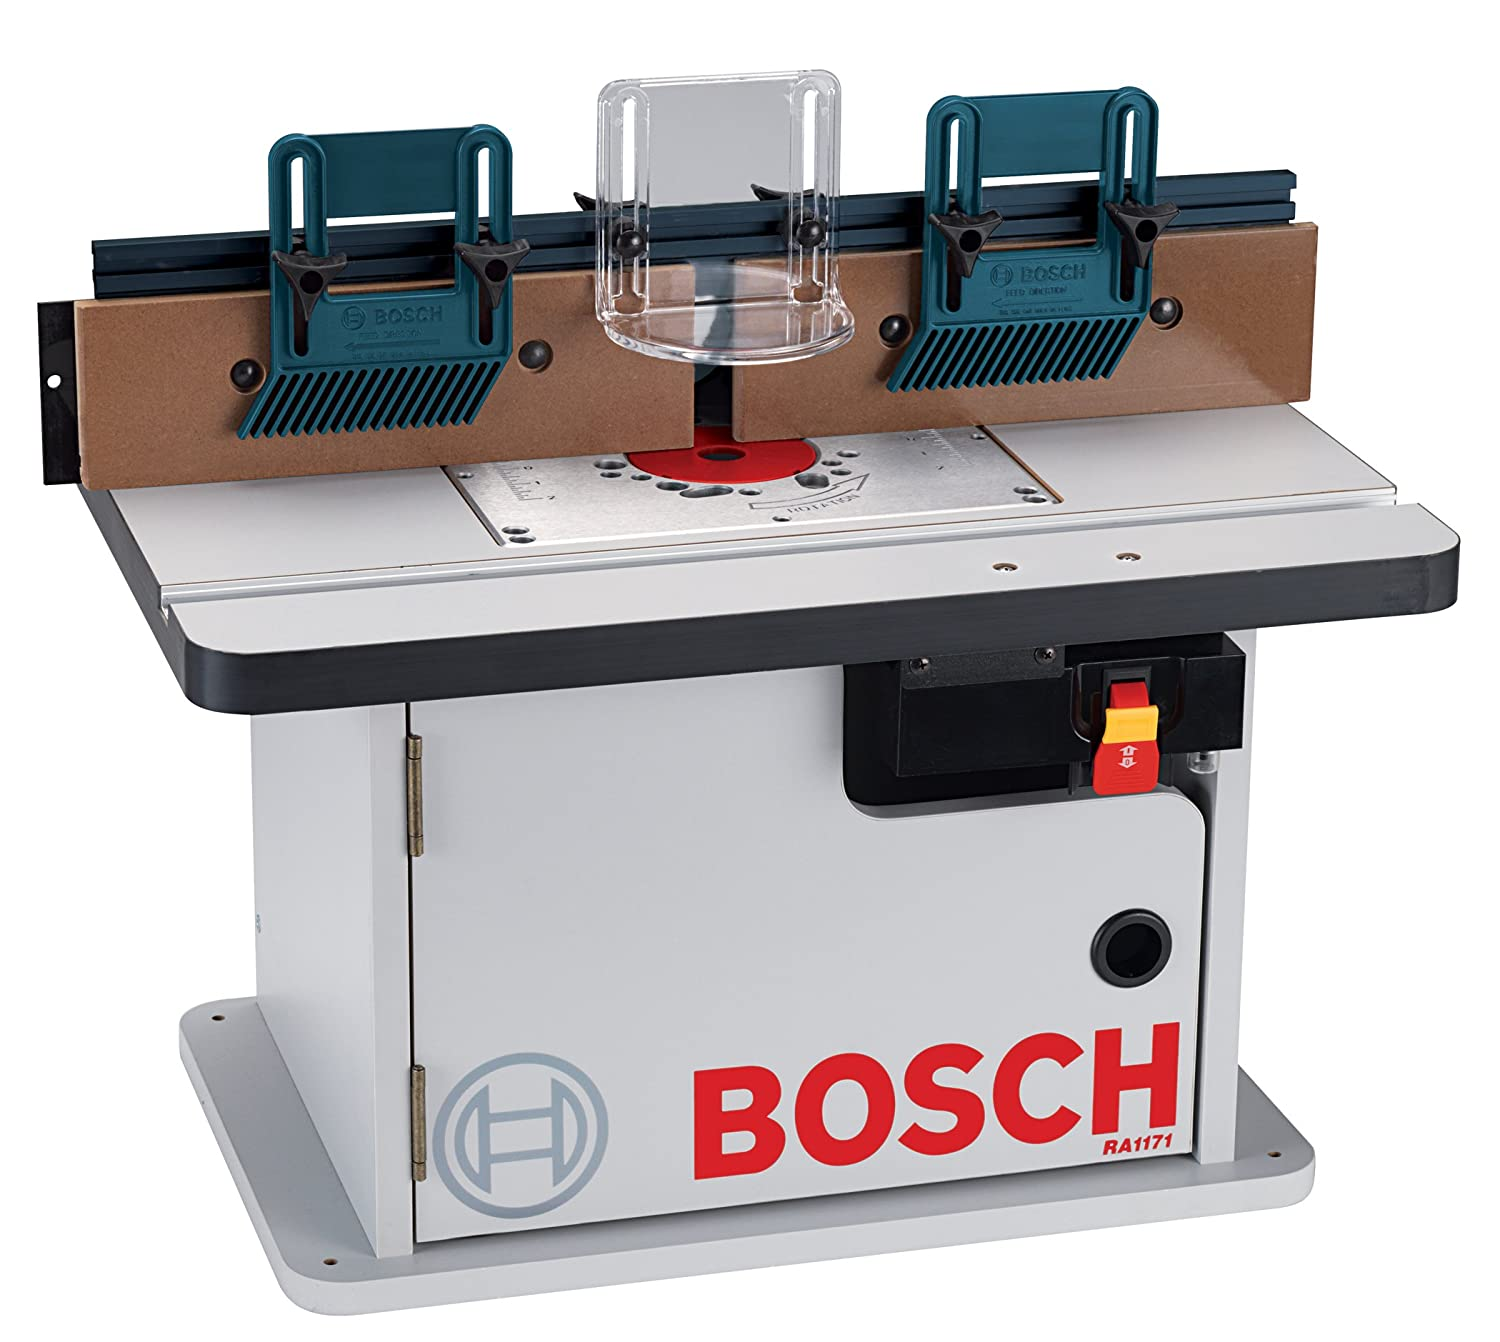 Bosch ra1171 cabinet style router table power router accessories bosch ra1171 cabinet style router table power router accessories amazon keyboard keysfo Images